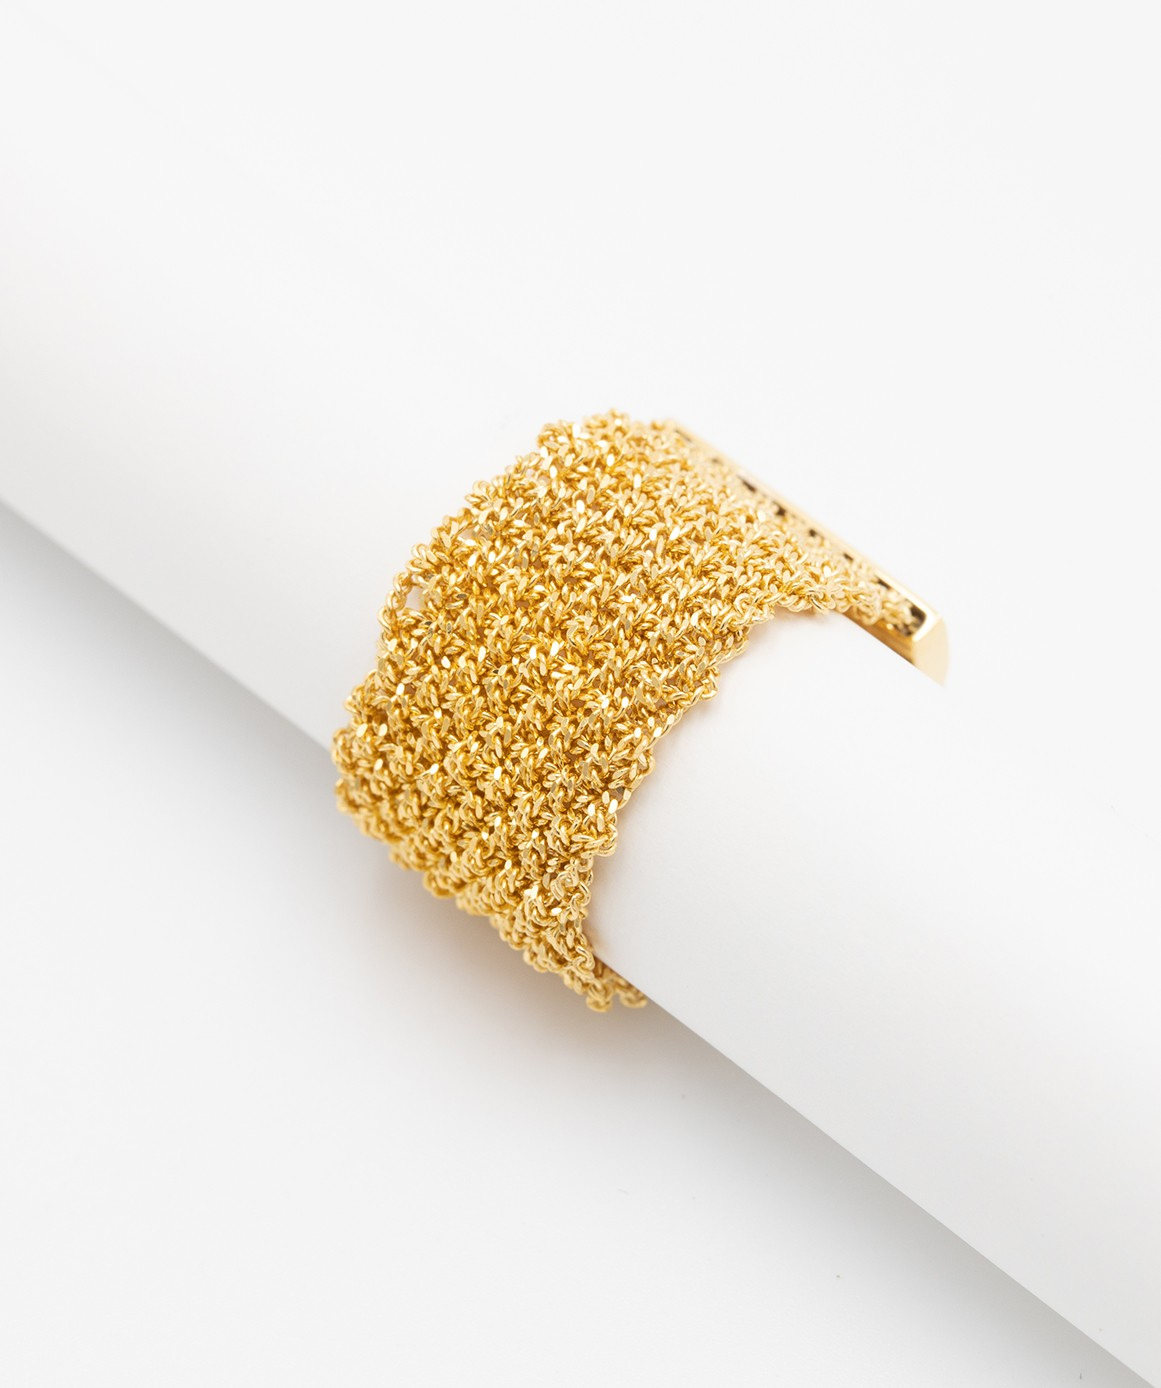 MESH Ring in Sterling Silver 18Kt. Yellow gold plated